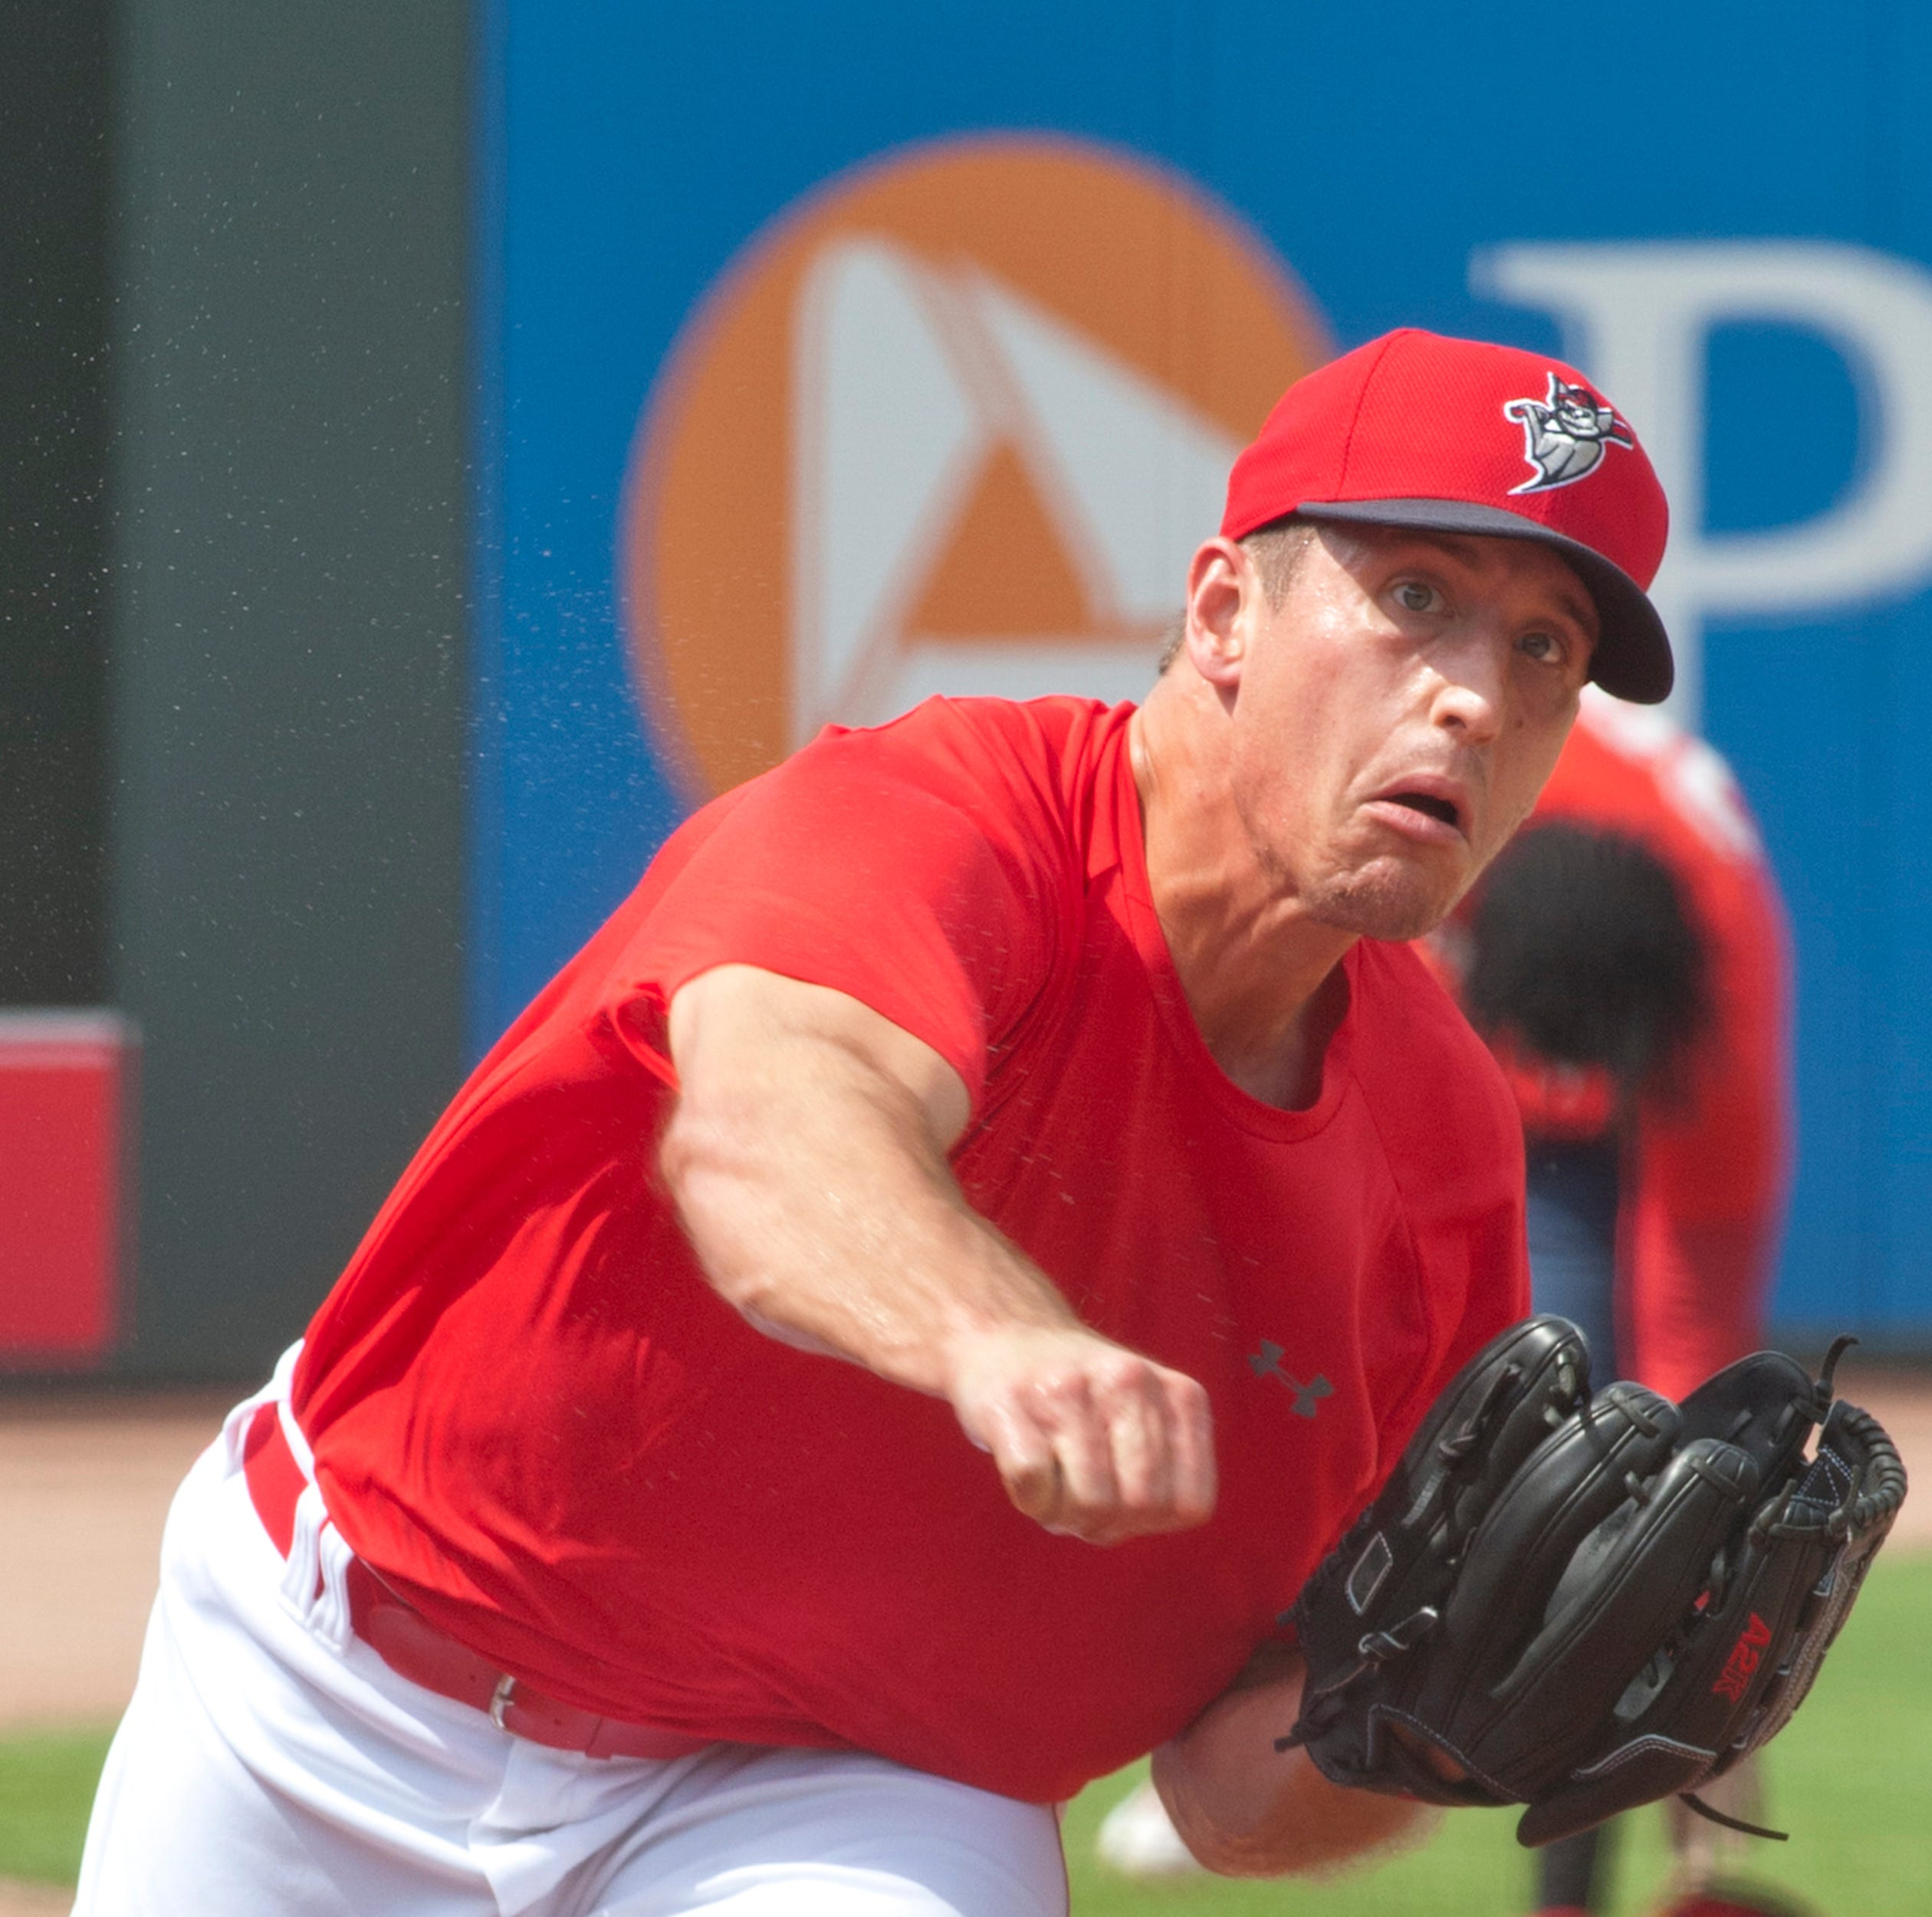 Louisville Bats' Lucas Sims 'taking one baby step at a time' back to Cincinnati Reds